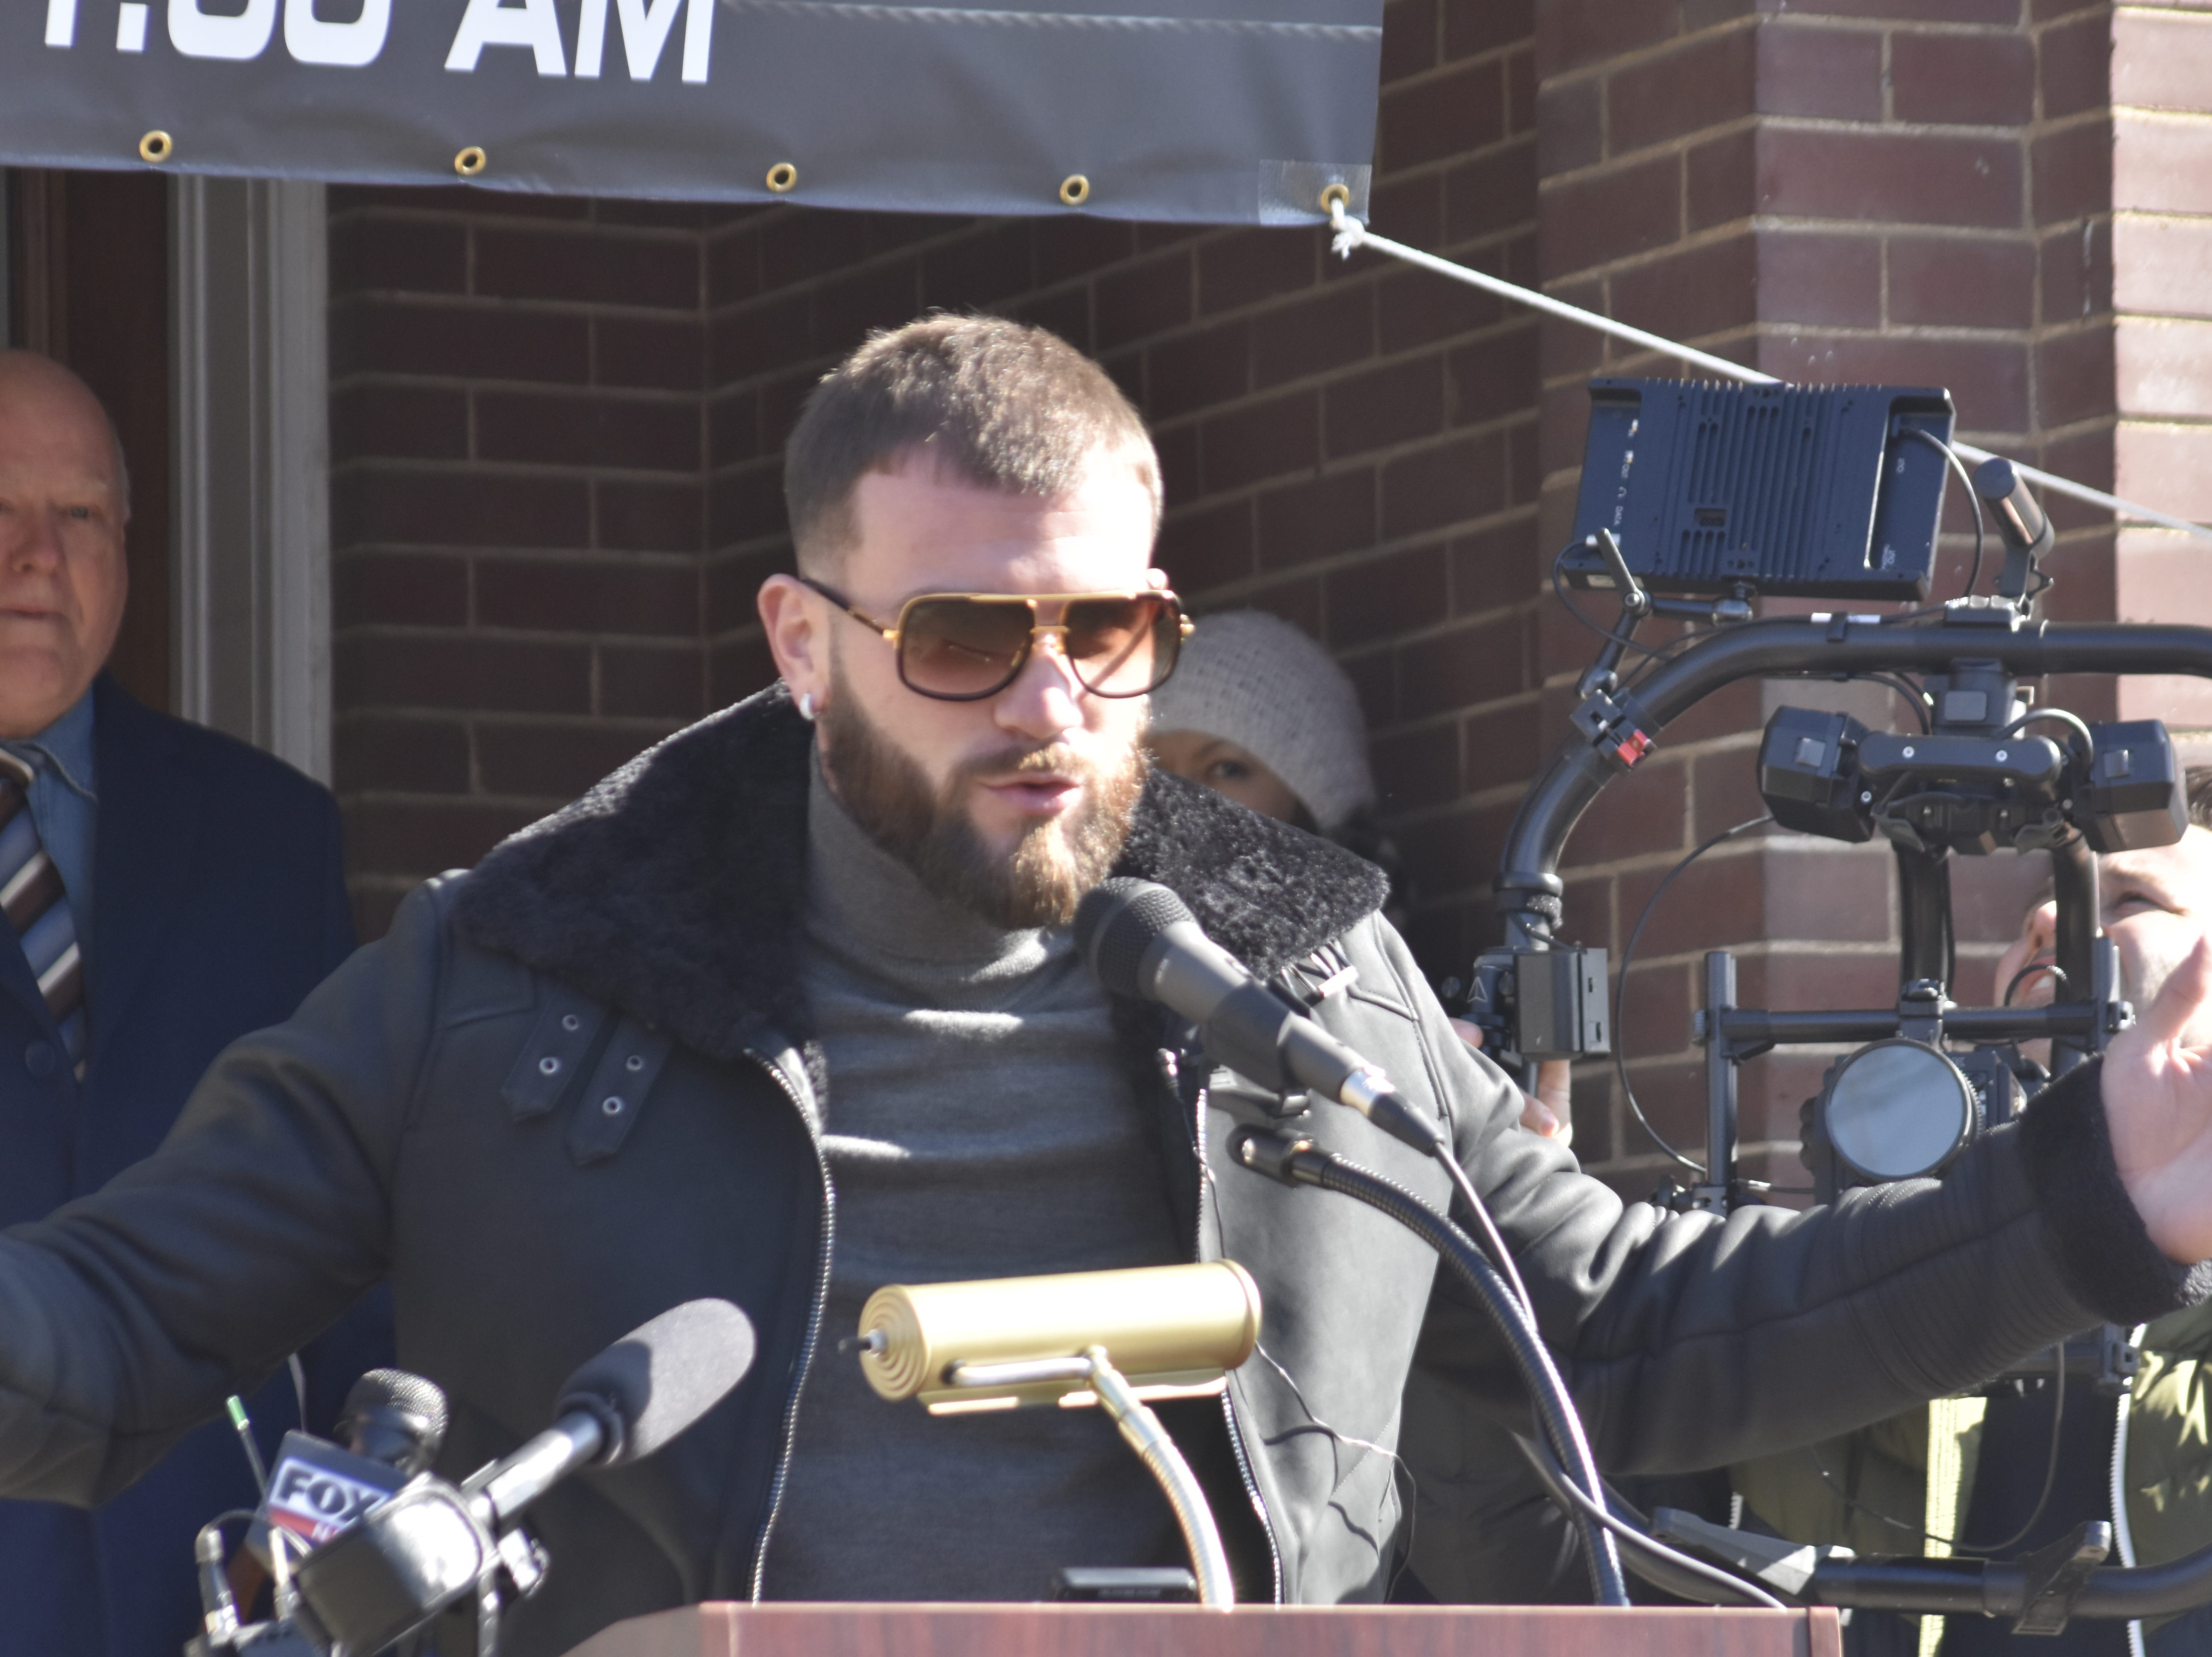 """Newly crowned International Boxing Federation super middleweight champion Caleb """"Sweethands"""" Plant, an Ashland City native, speaks at a news conference Jan. 31 at the Cheatham County Courthouse."""